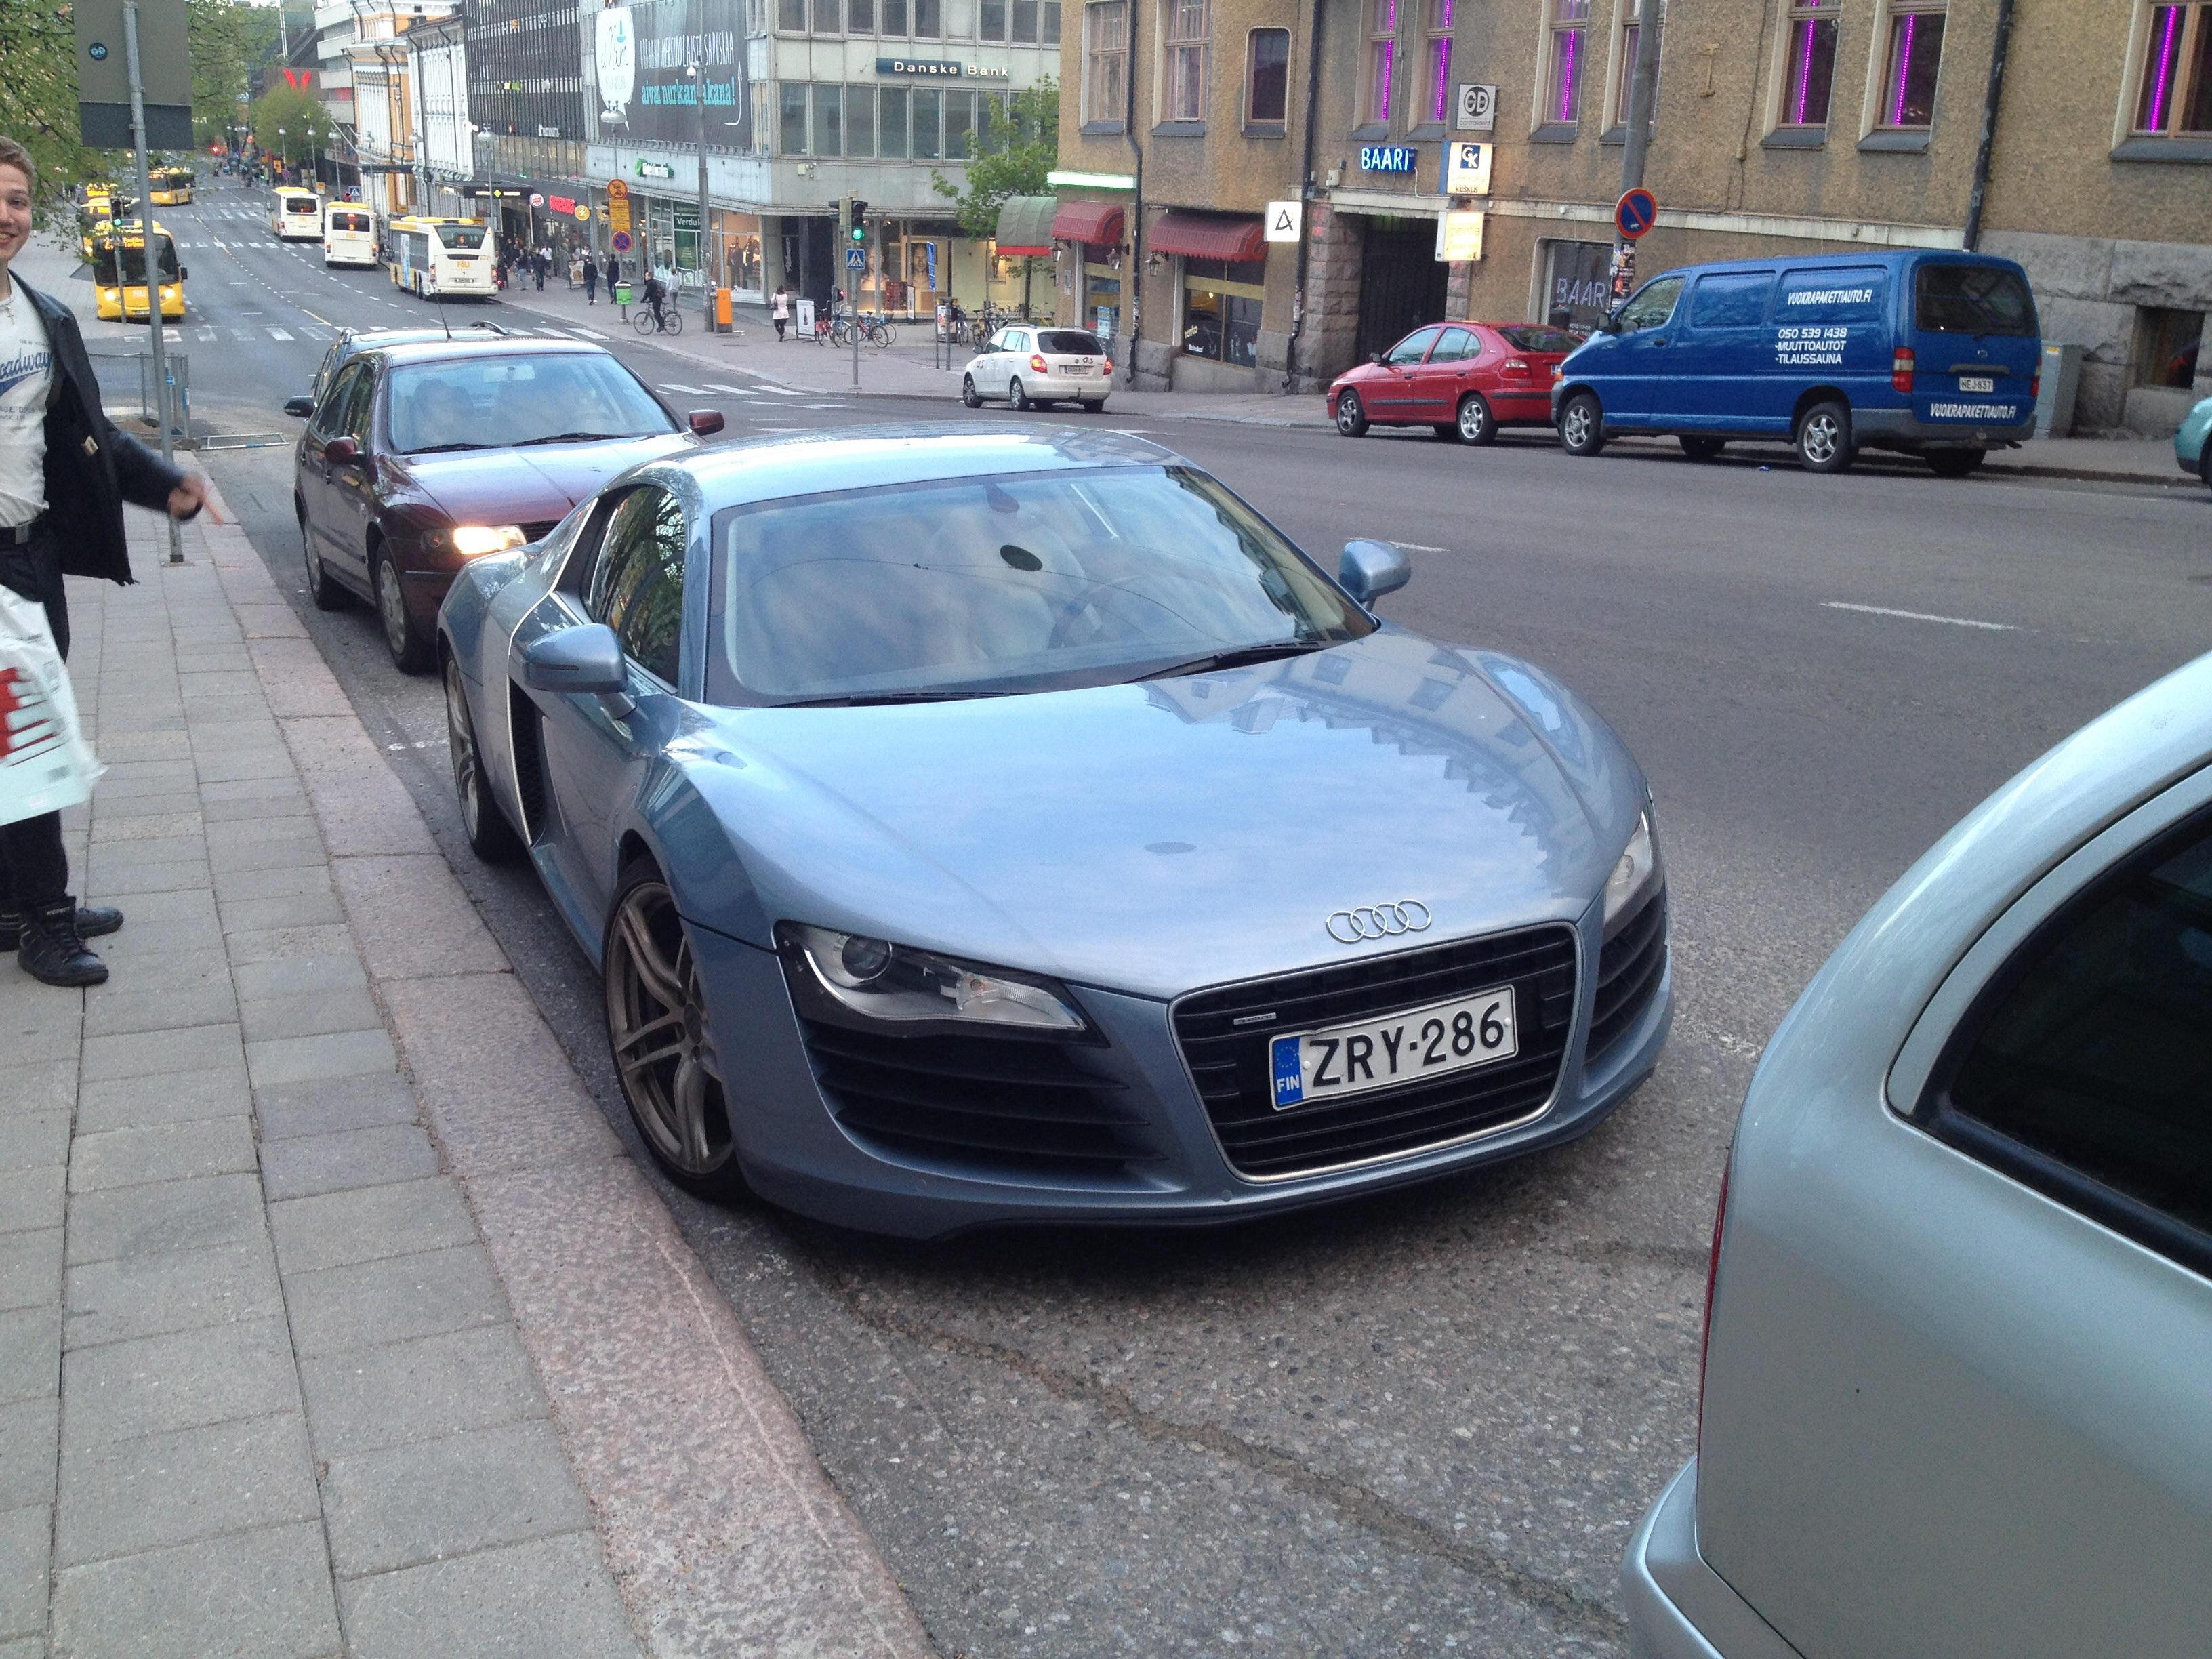 R8 in Turku, Finland. It's the 4.2 V8, but with automatic transmission